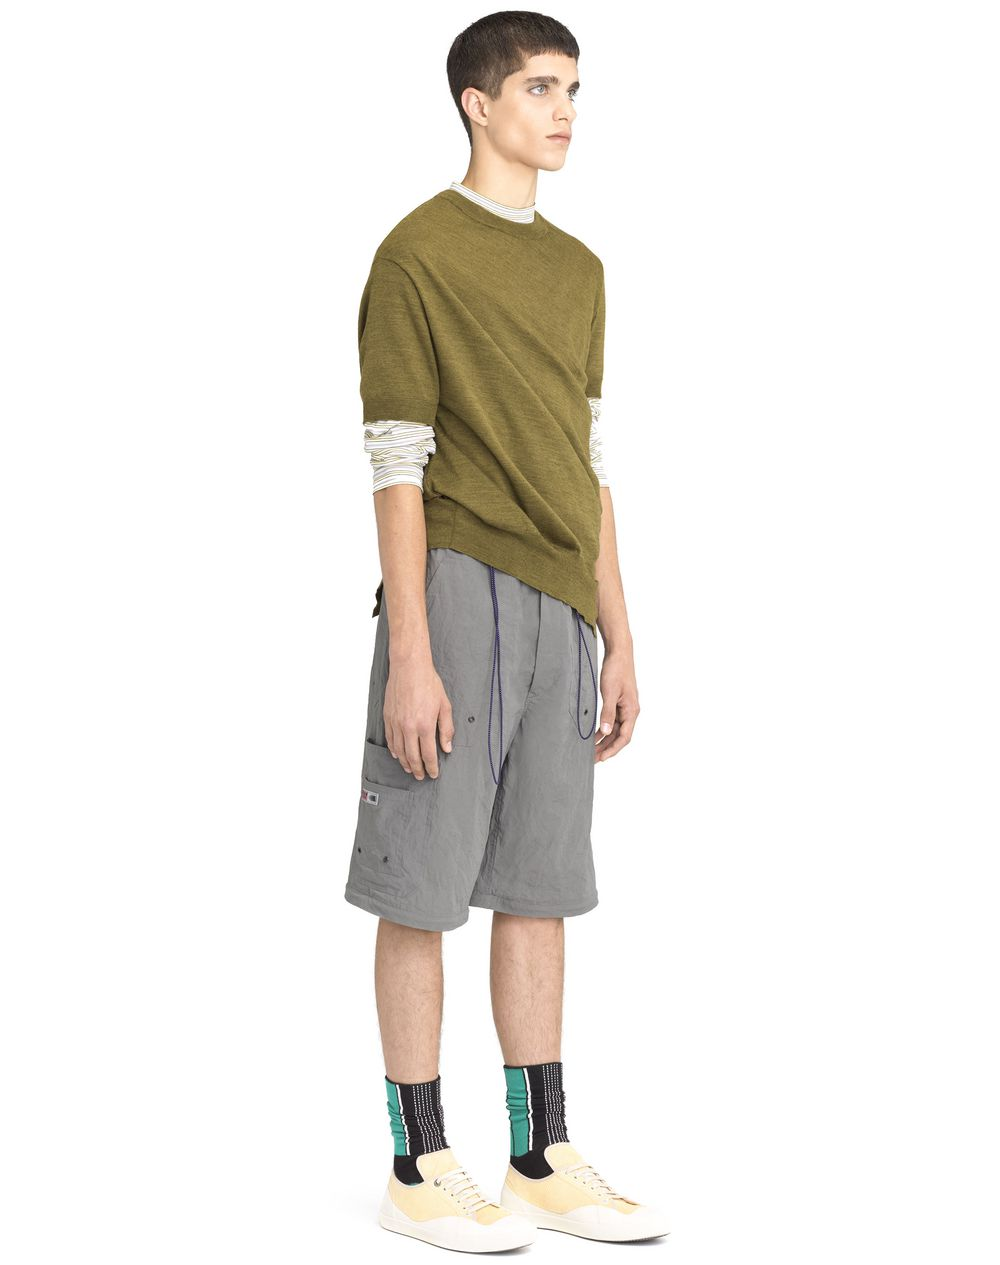 ANTIQUED GREEN ASYMMETRICAL TWISTED SWEATER - Lanvin